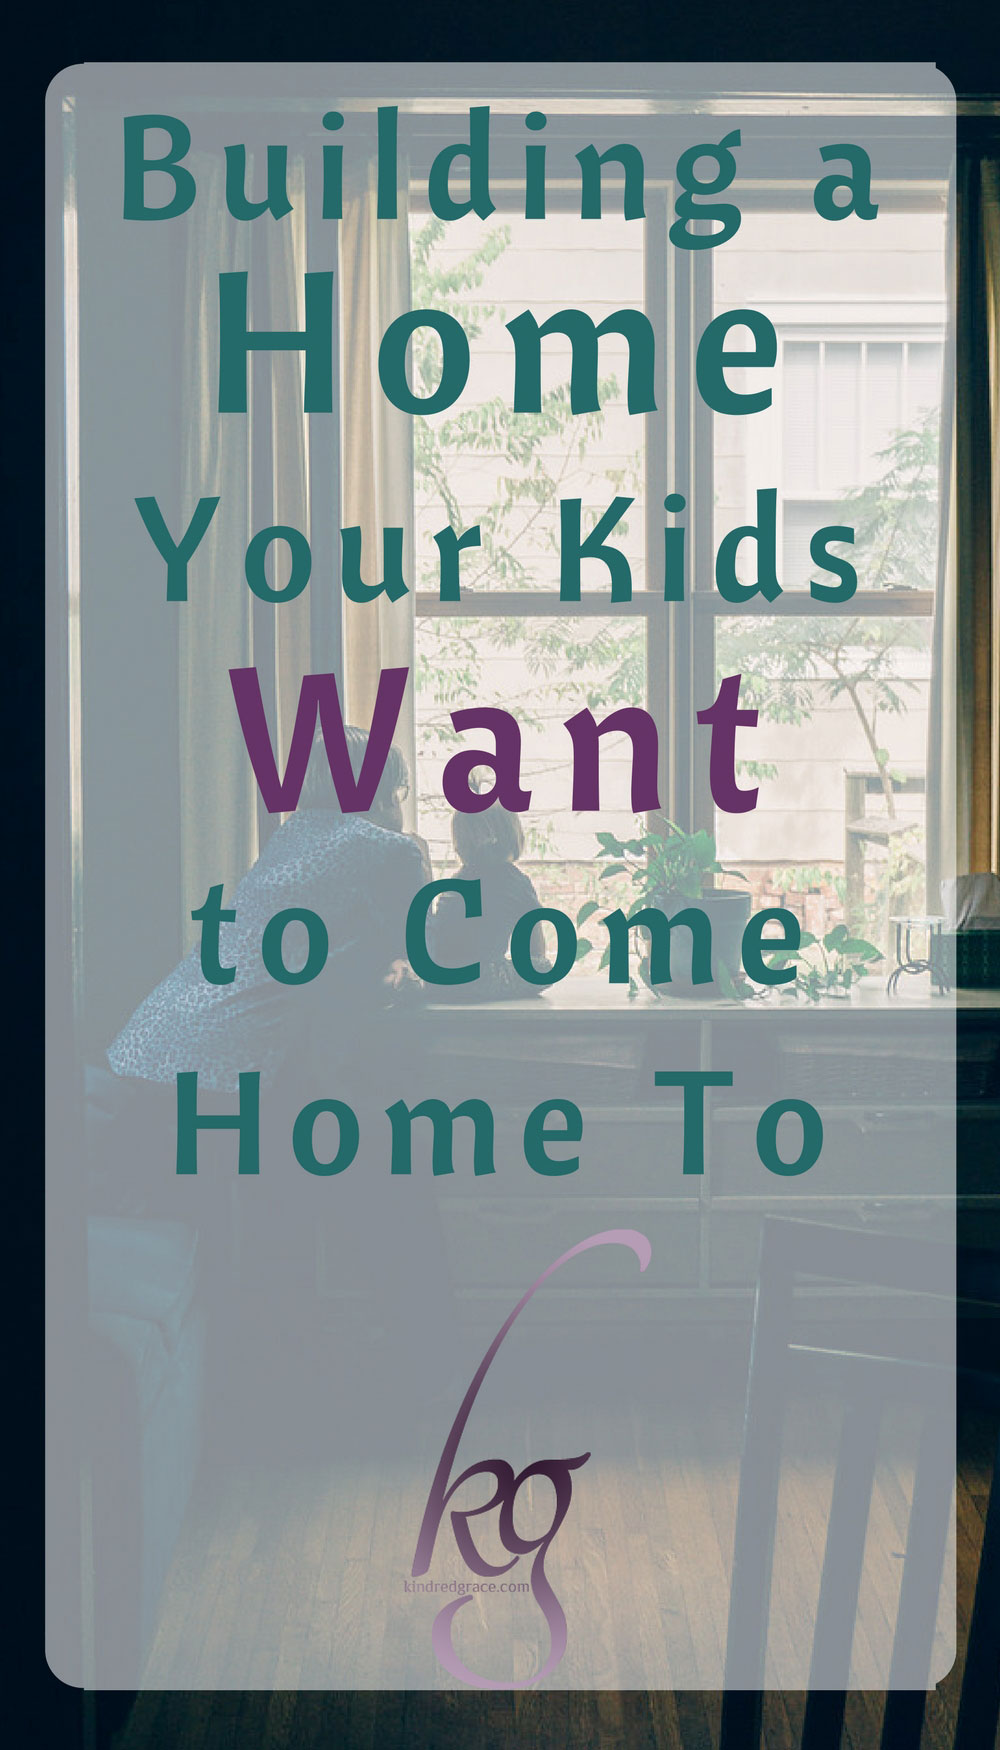 I don't have a three-step plan, but we care deeply about creating a safe family. Our kids aren't babies anymore, but we are still in the thick of it. We don't know how it will all turn out. But here are eleven things we are doing to build relationships with our kids and create a home they'll want to visit someday. via @KindredGrace